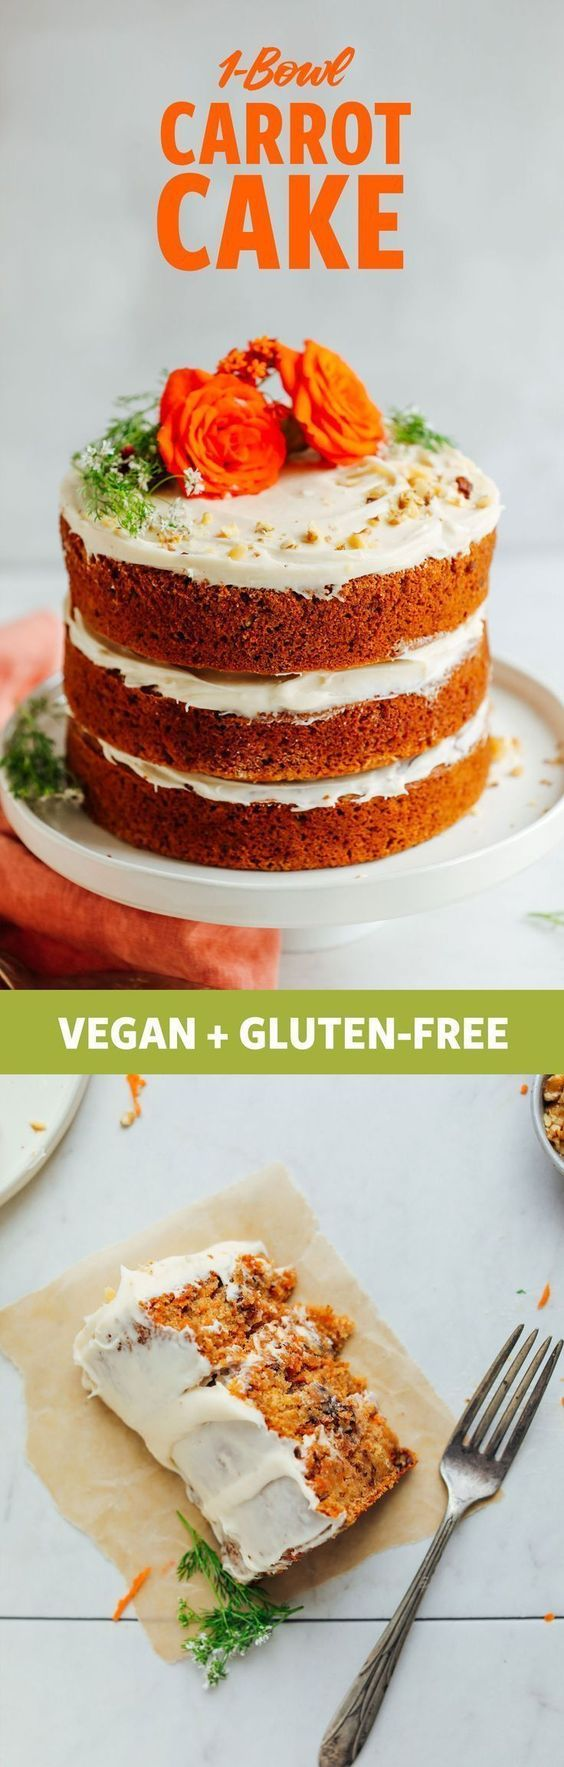 THE BEST Vegan Gluten-Free Carrot Cake! 1 Bowl, rich, moist, with 6 FROSTING options!